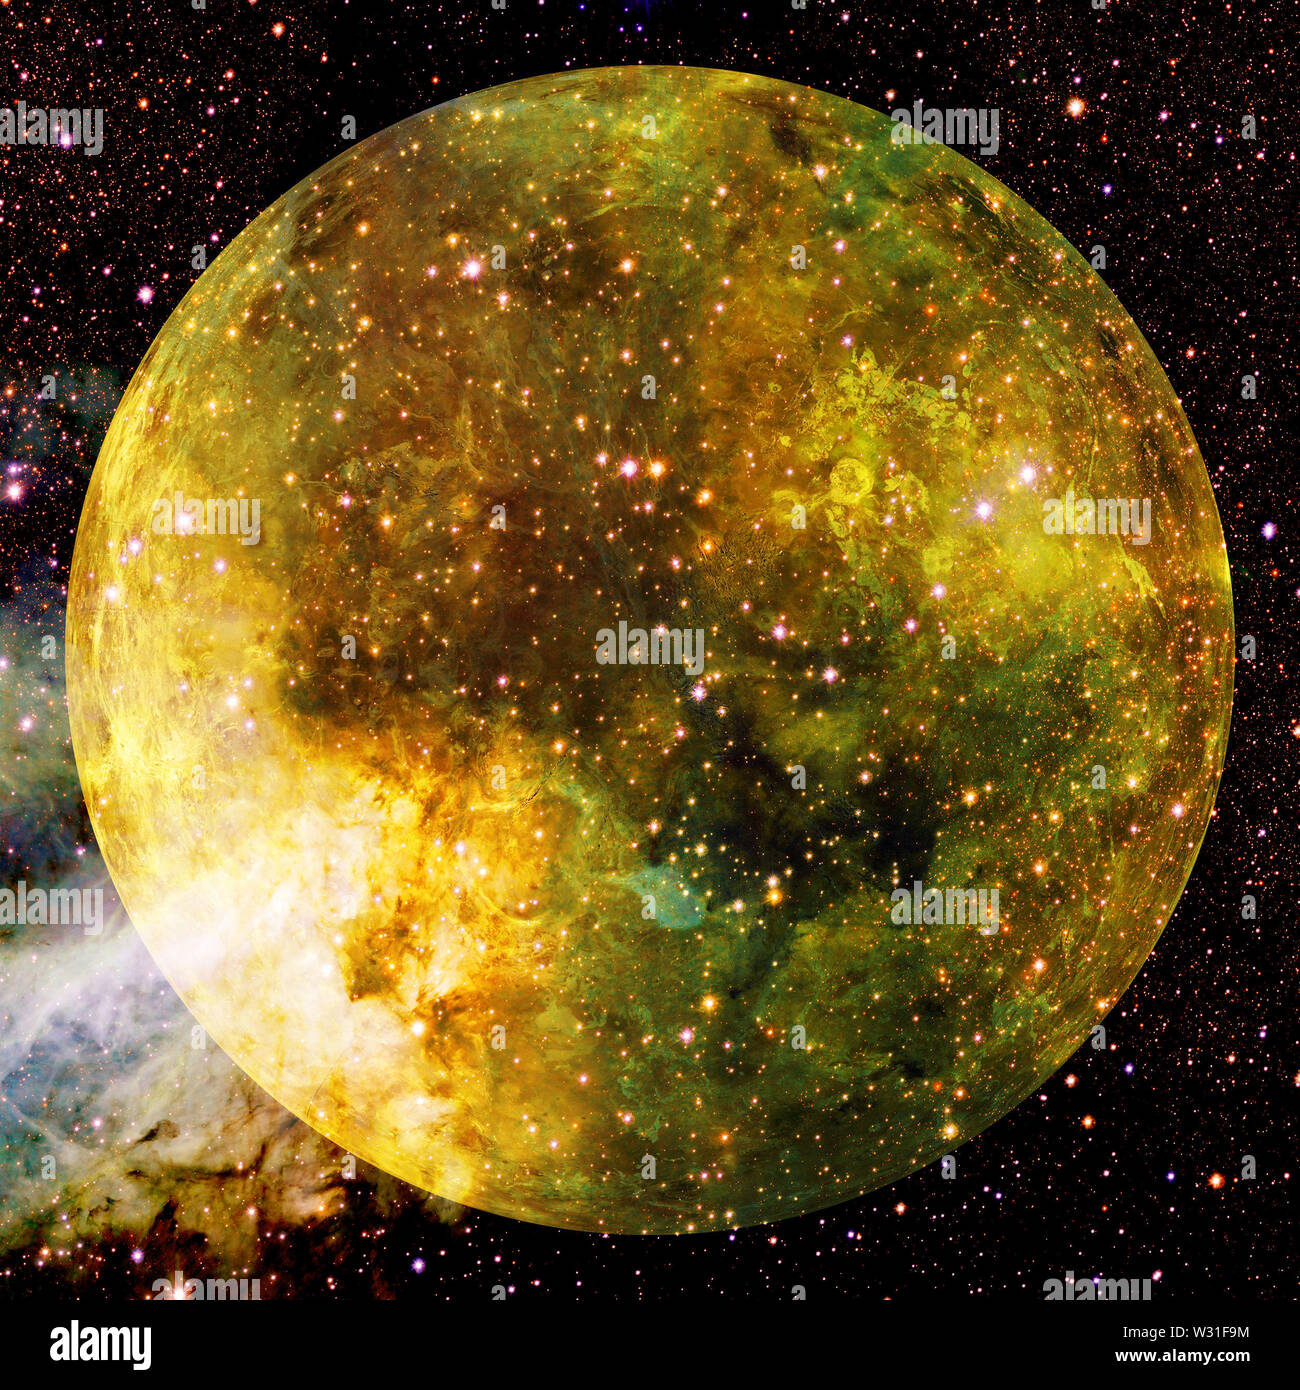 Planet Venus. Cosmos art. Elements of this image furnished by NASA. - Stock Image